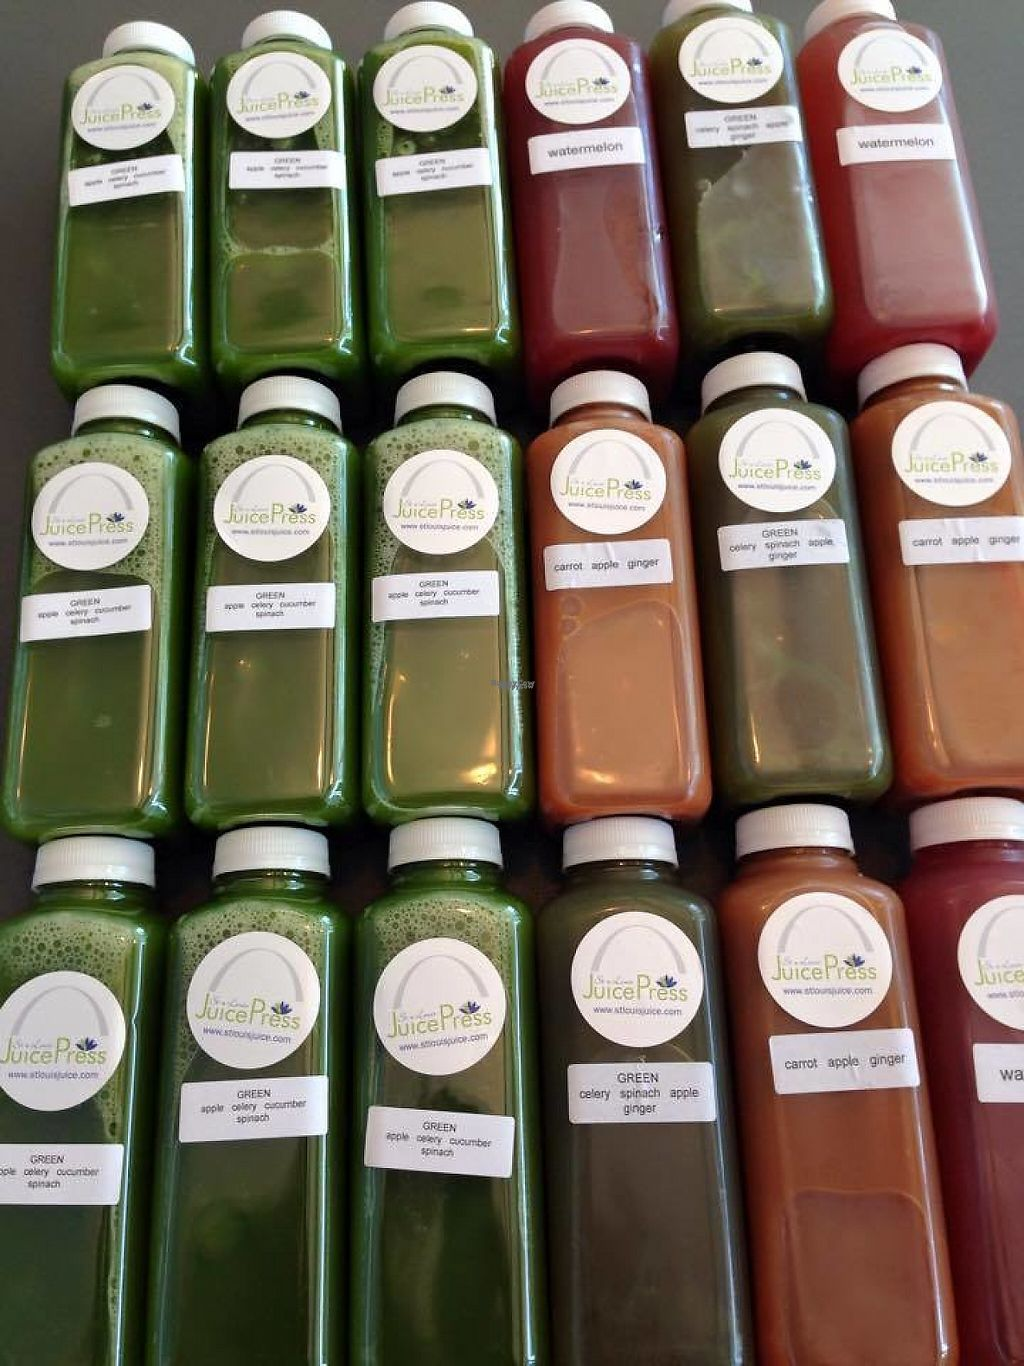 """Photo of St. Louis Juice Press  by <a href=""""/members/profile/StLouisJuicePress"""">StLouisJuicePress</a> <br/>3 day juice cleanse! <br/> February 21, 2017  - <a href='/contact/abuse/image/85799/228958'>Report</a>"""